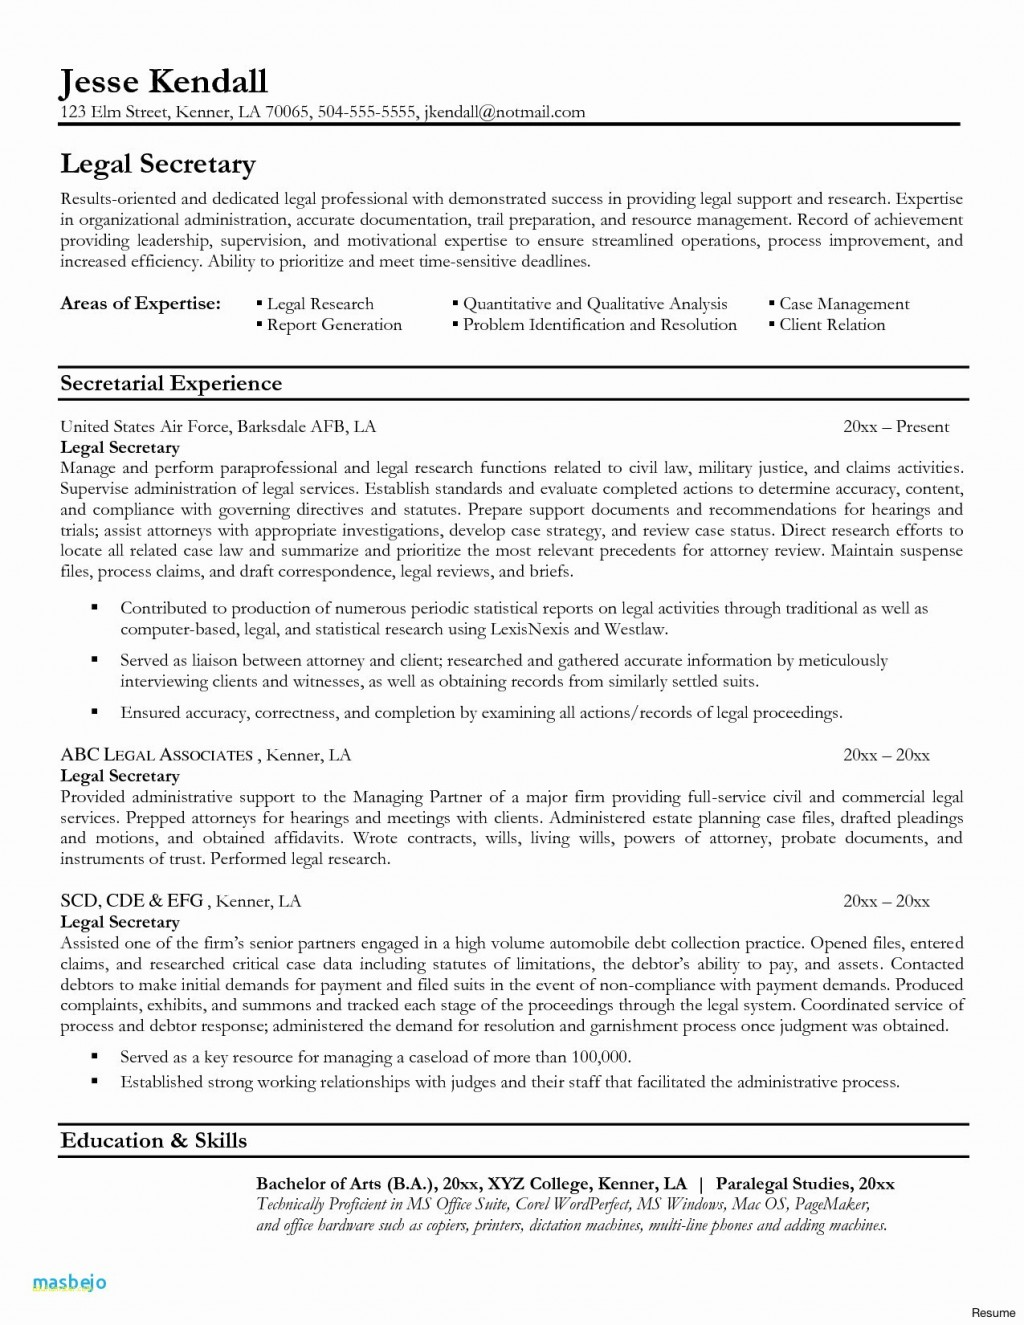 013 Copyright Laws In Education Best Of Unique Life Essays Impressive Essay Examples 2012 Large